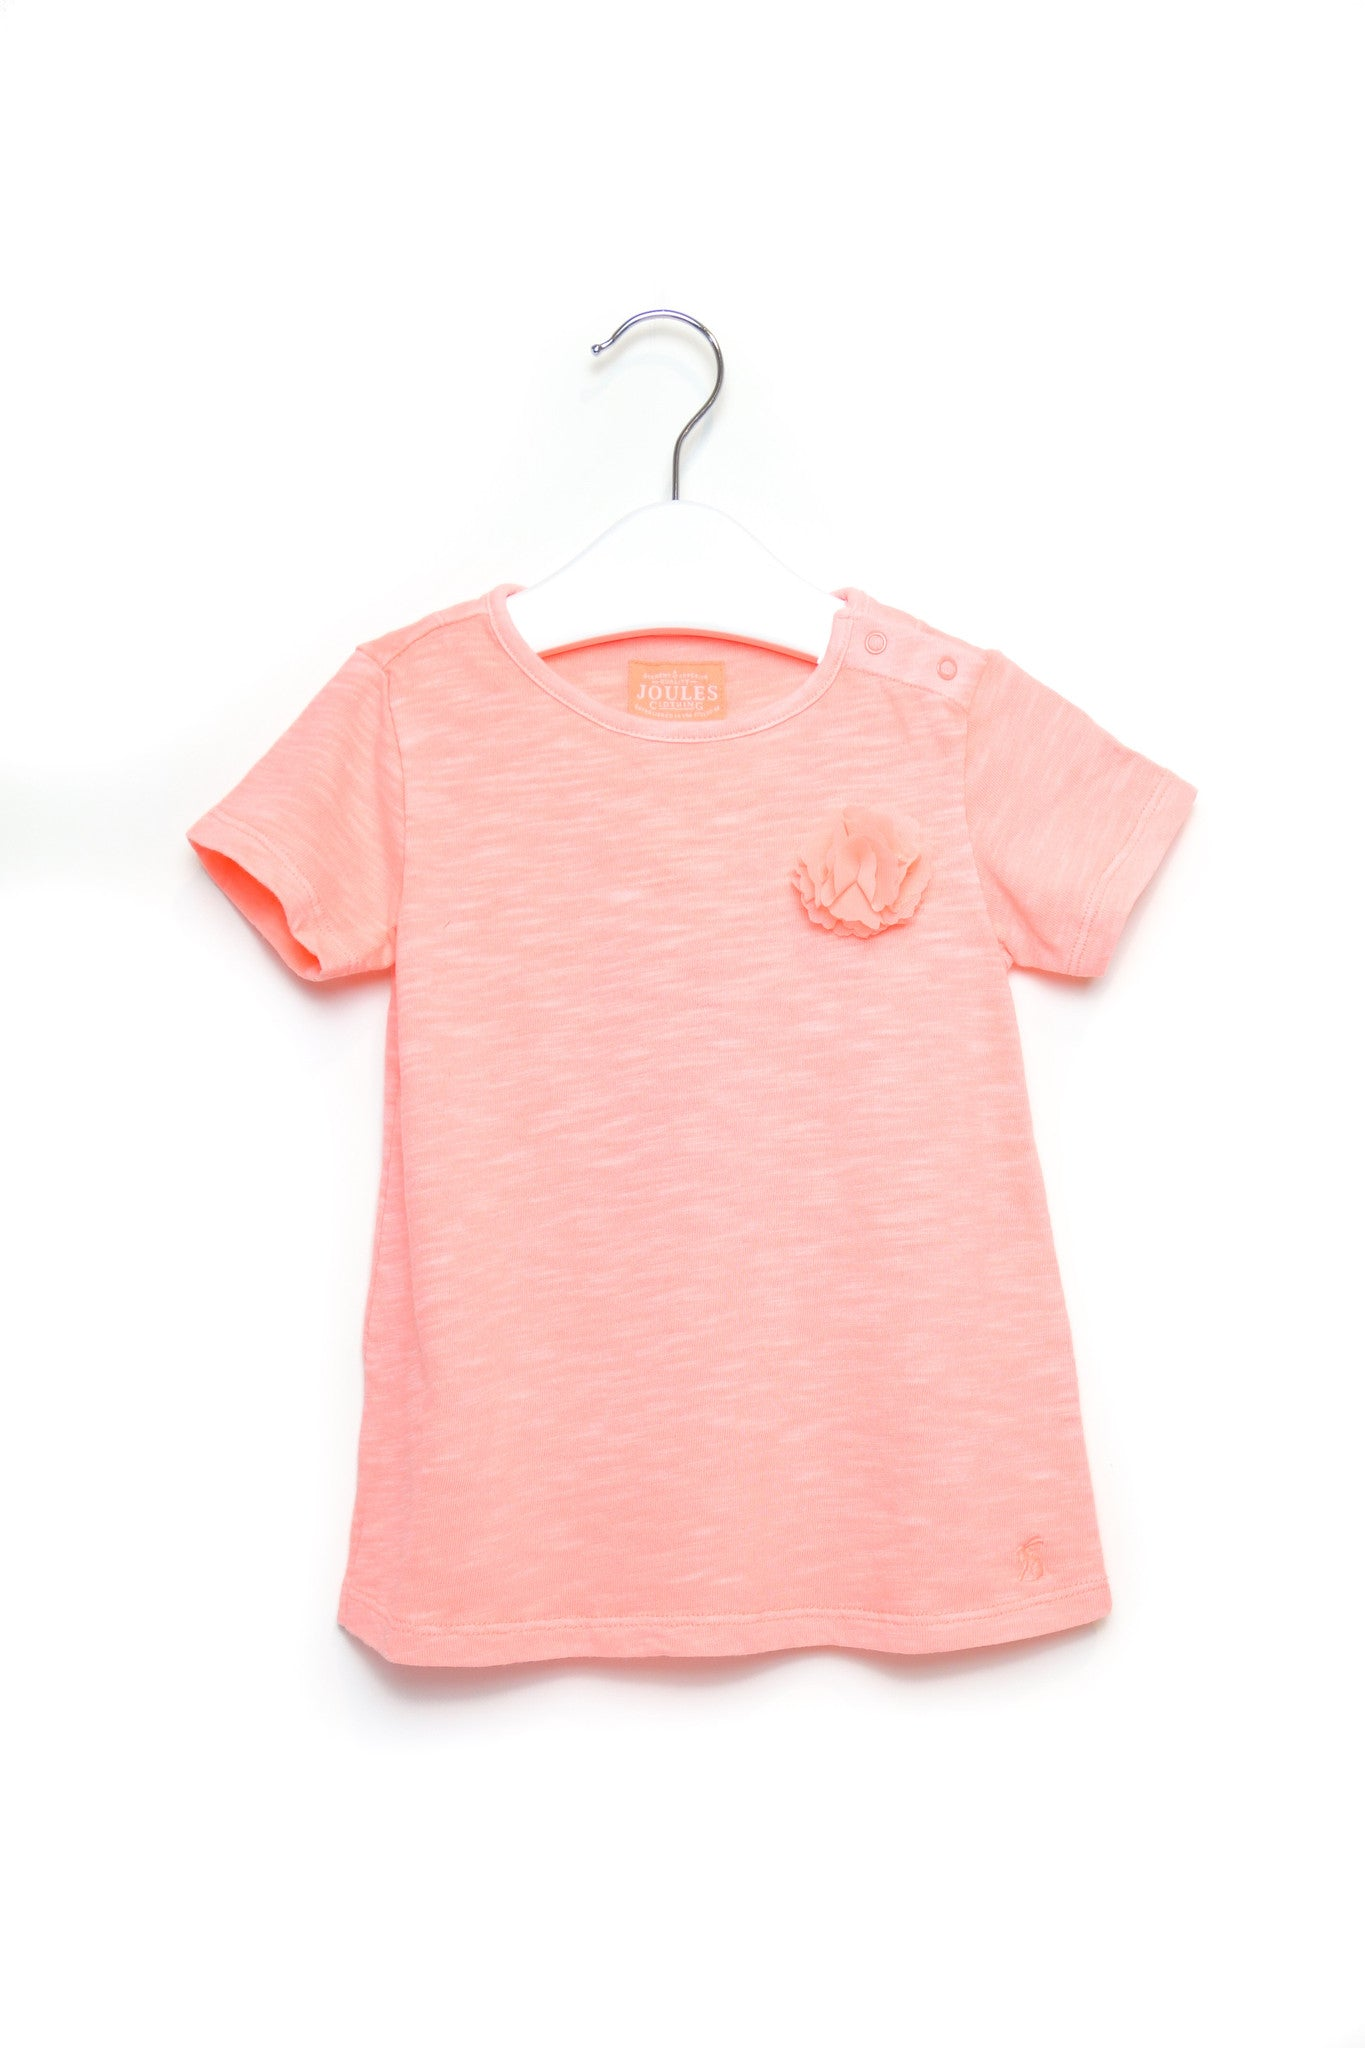 10001480~T-Shirt 2-3T, Joules at Retykle - Online Baby & Kids Clothing Up to 90% Off